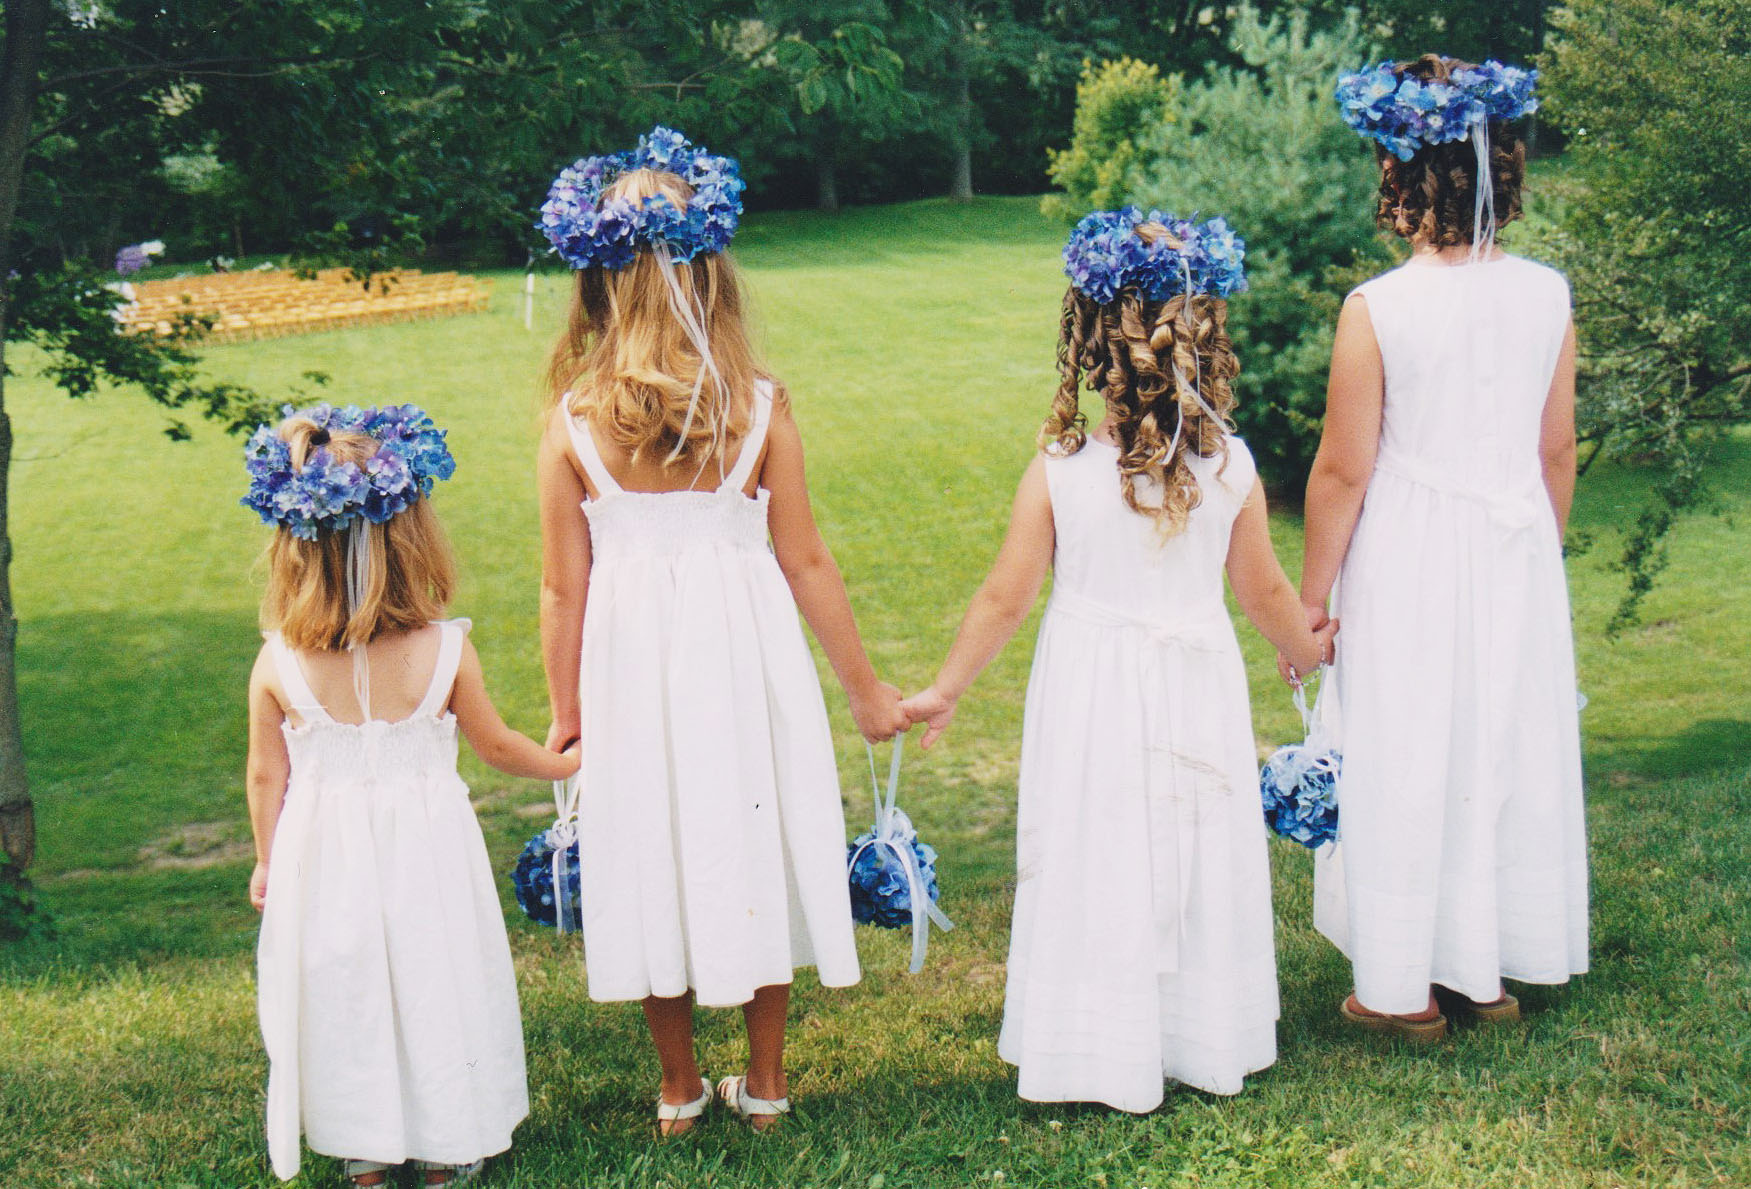 Weaver-Remnant-Fellowship-Wedding-Flowergirls-Hair